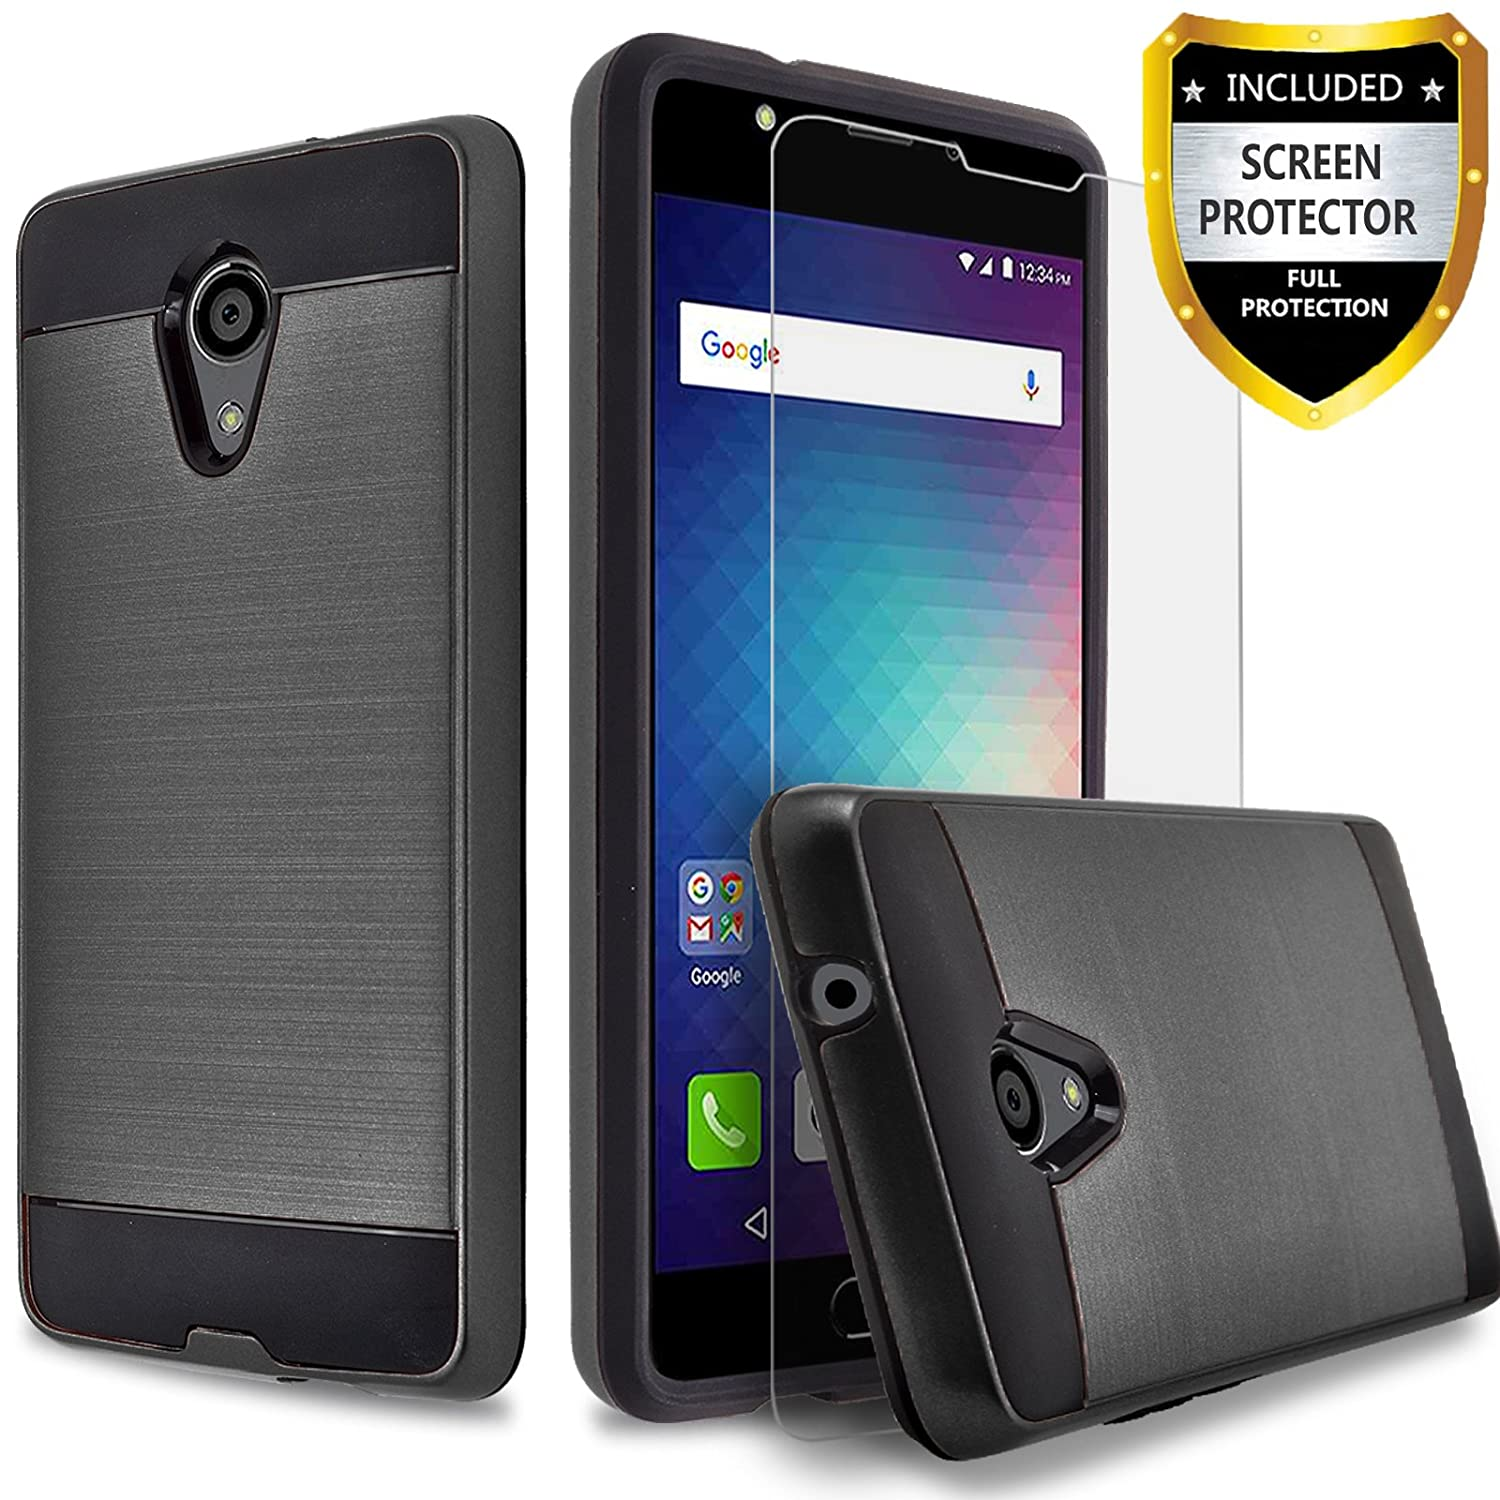 BLU Advance 5.5 HD Case, BLU Grand 5.5 HD Case, Circlemalls 2-Piece Style Hybrid Shockproof Hard Case Cover With [Premium Screen Protector] And Touch Screen Pen (Black)